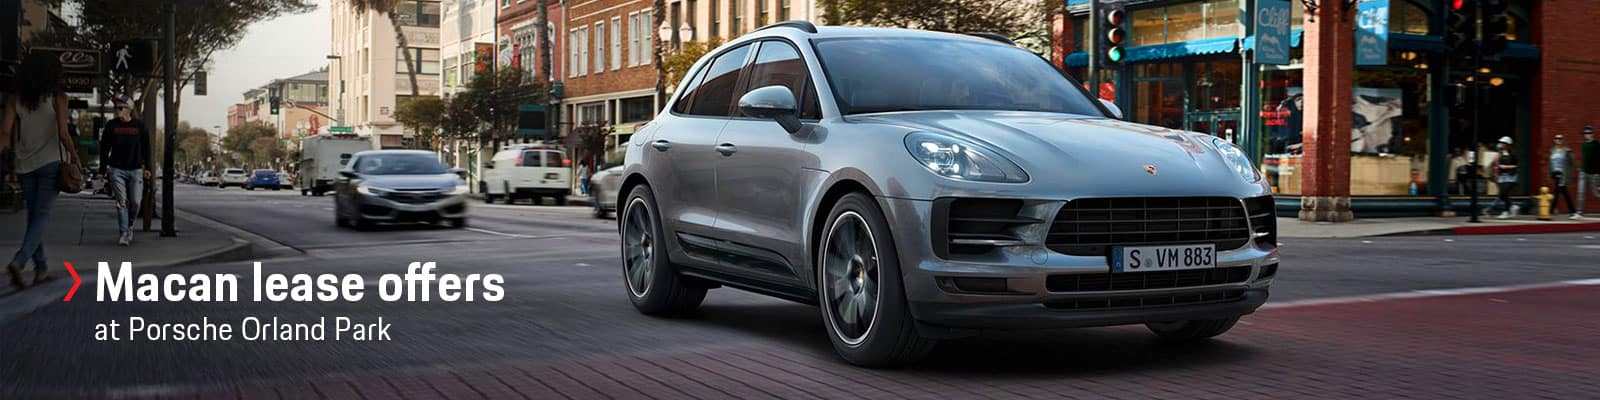 Porsche Macan Lease Specials in Chicago, Illinois